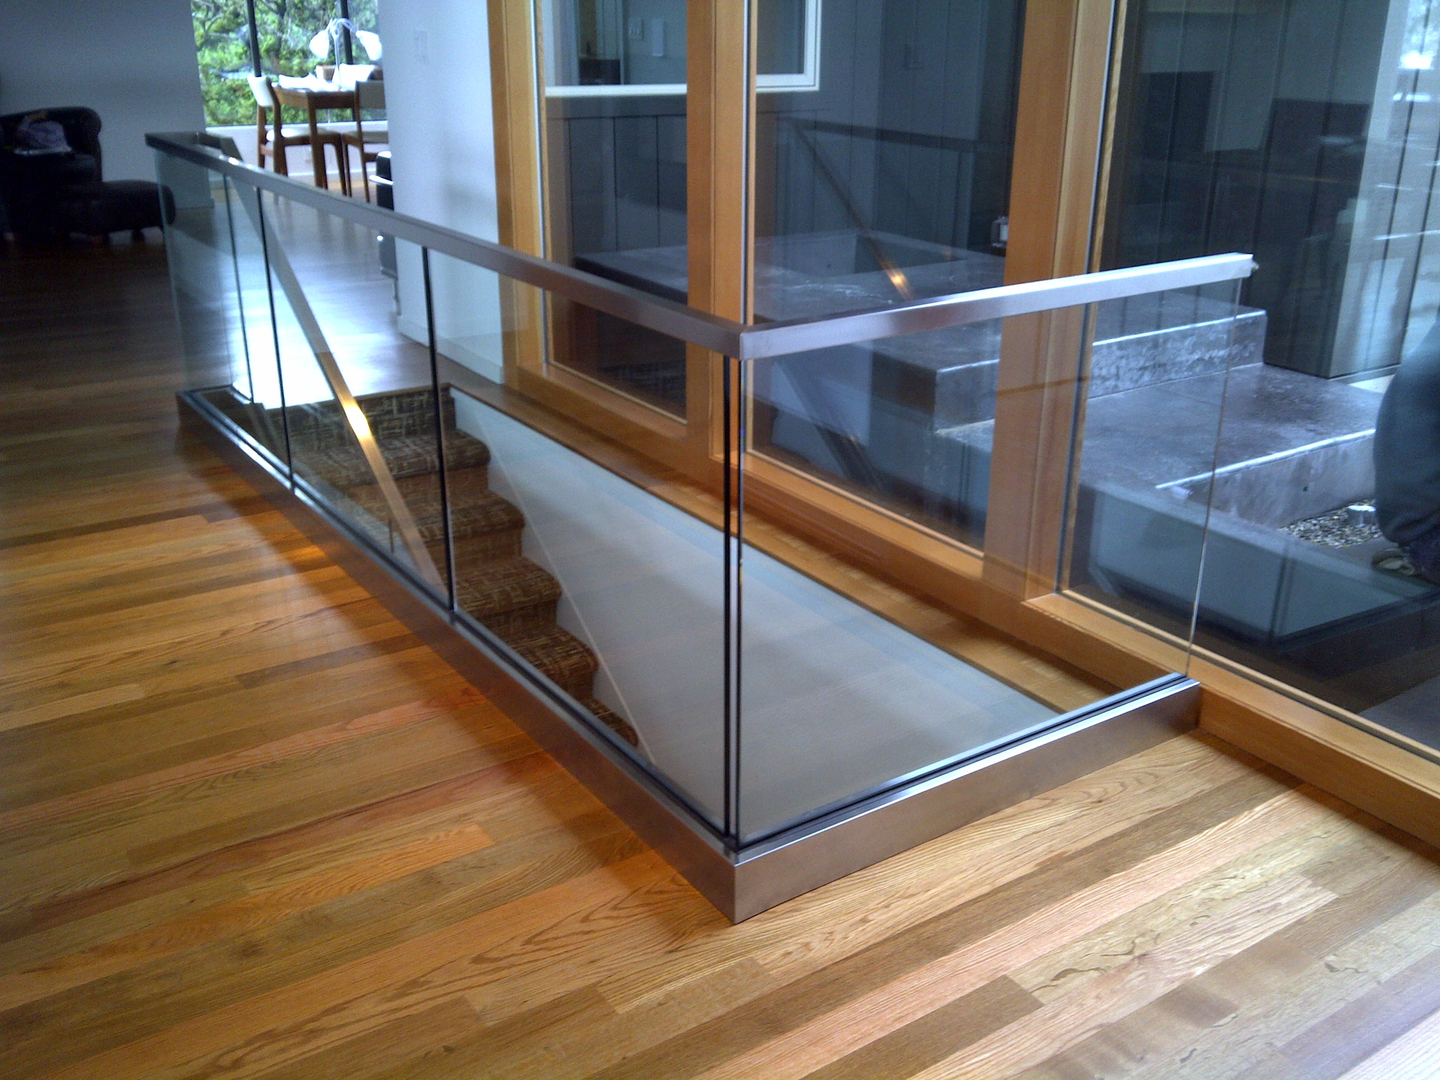 services residential interior rails glass peninsula systems stair guard sf hand and glasshandrailandguardrailsystems railing